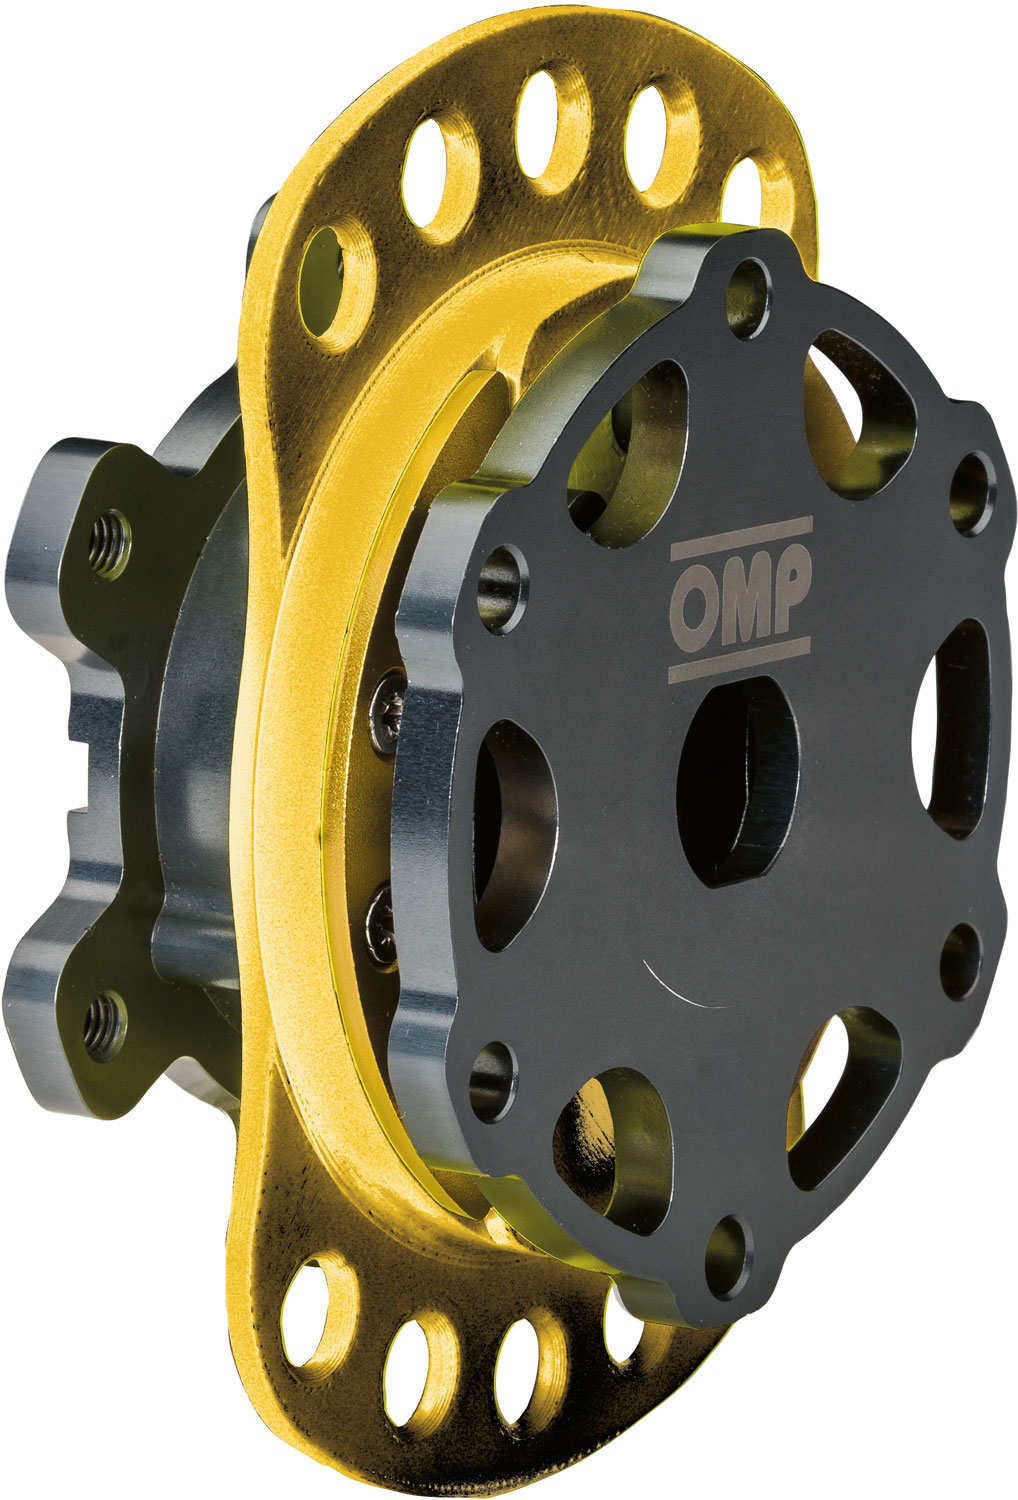 OMP Snap-Off Adapter